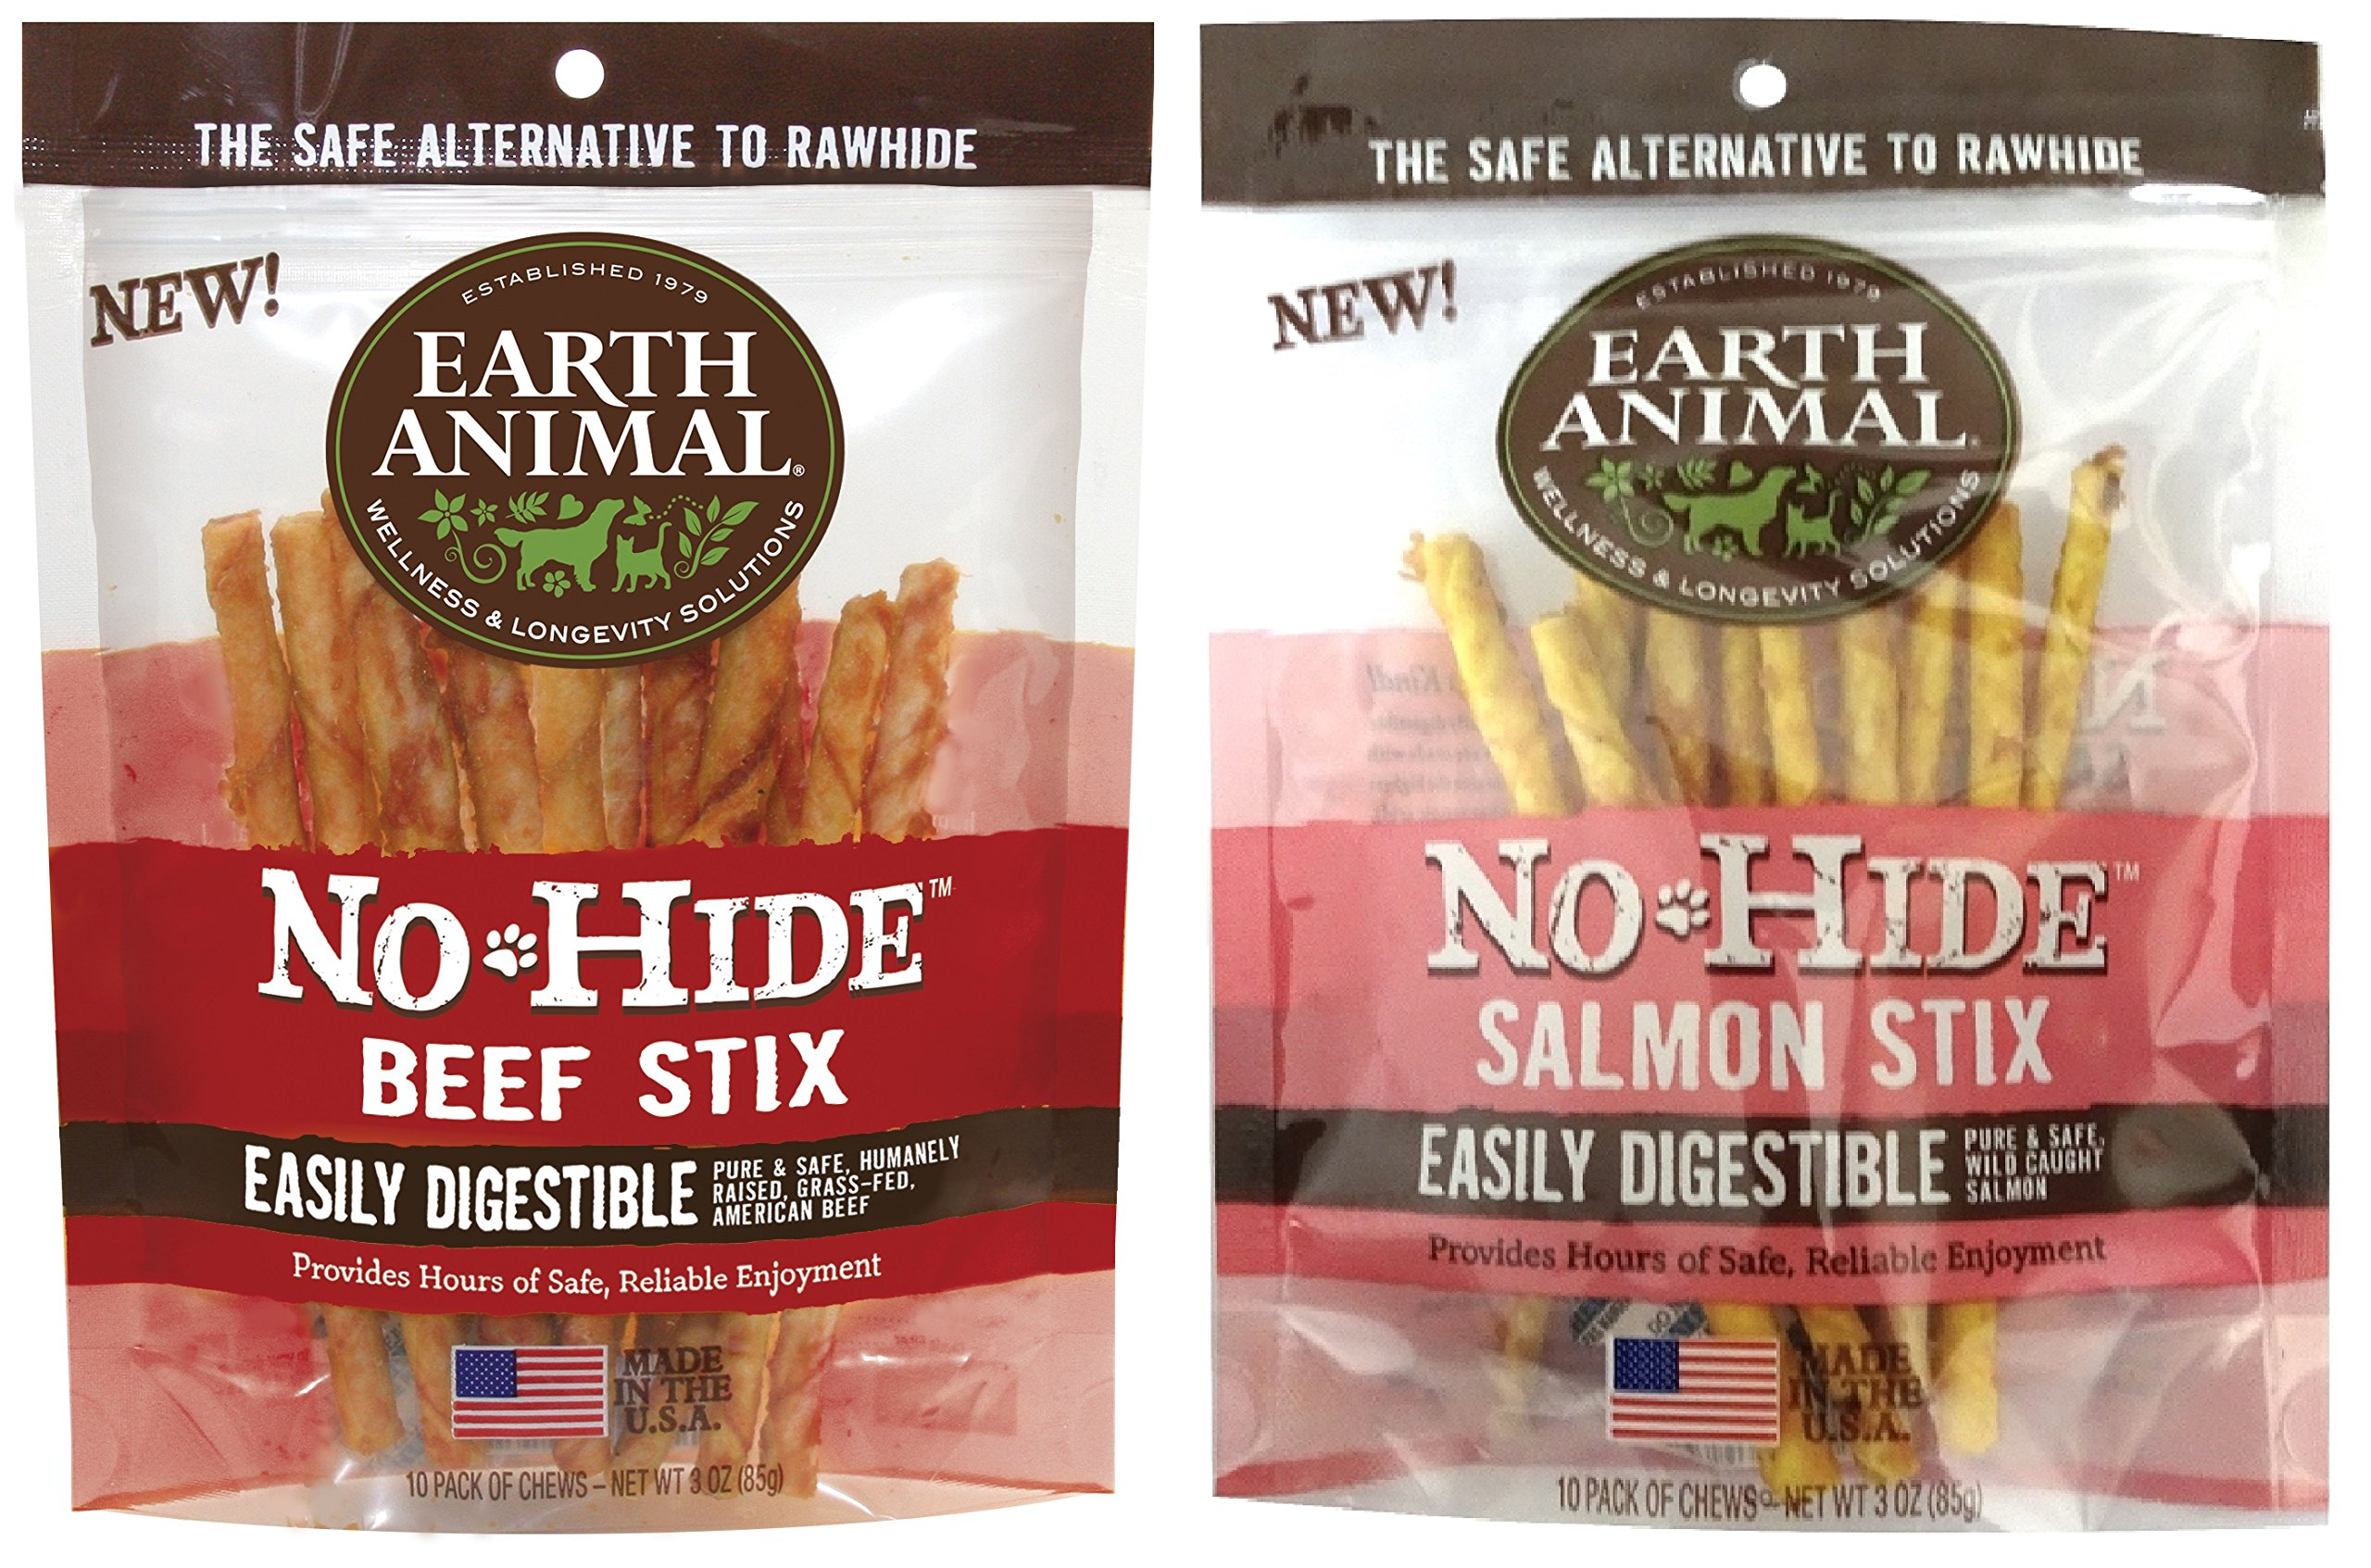 (2pc Combo Pack) Earth Animal No-Hide Beef Stix, 10ct (Beef) and Earth Animal No-Hide Salmon Stix, 10ct. by Earth Animal